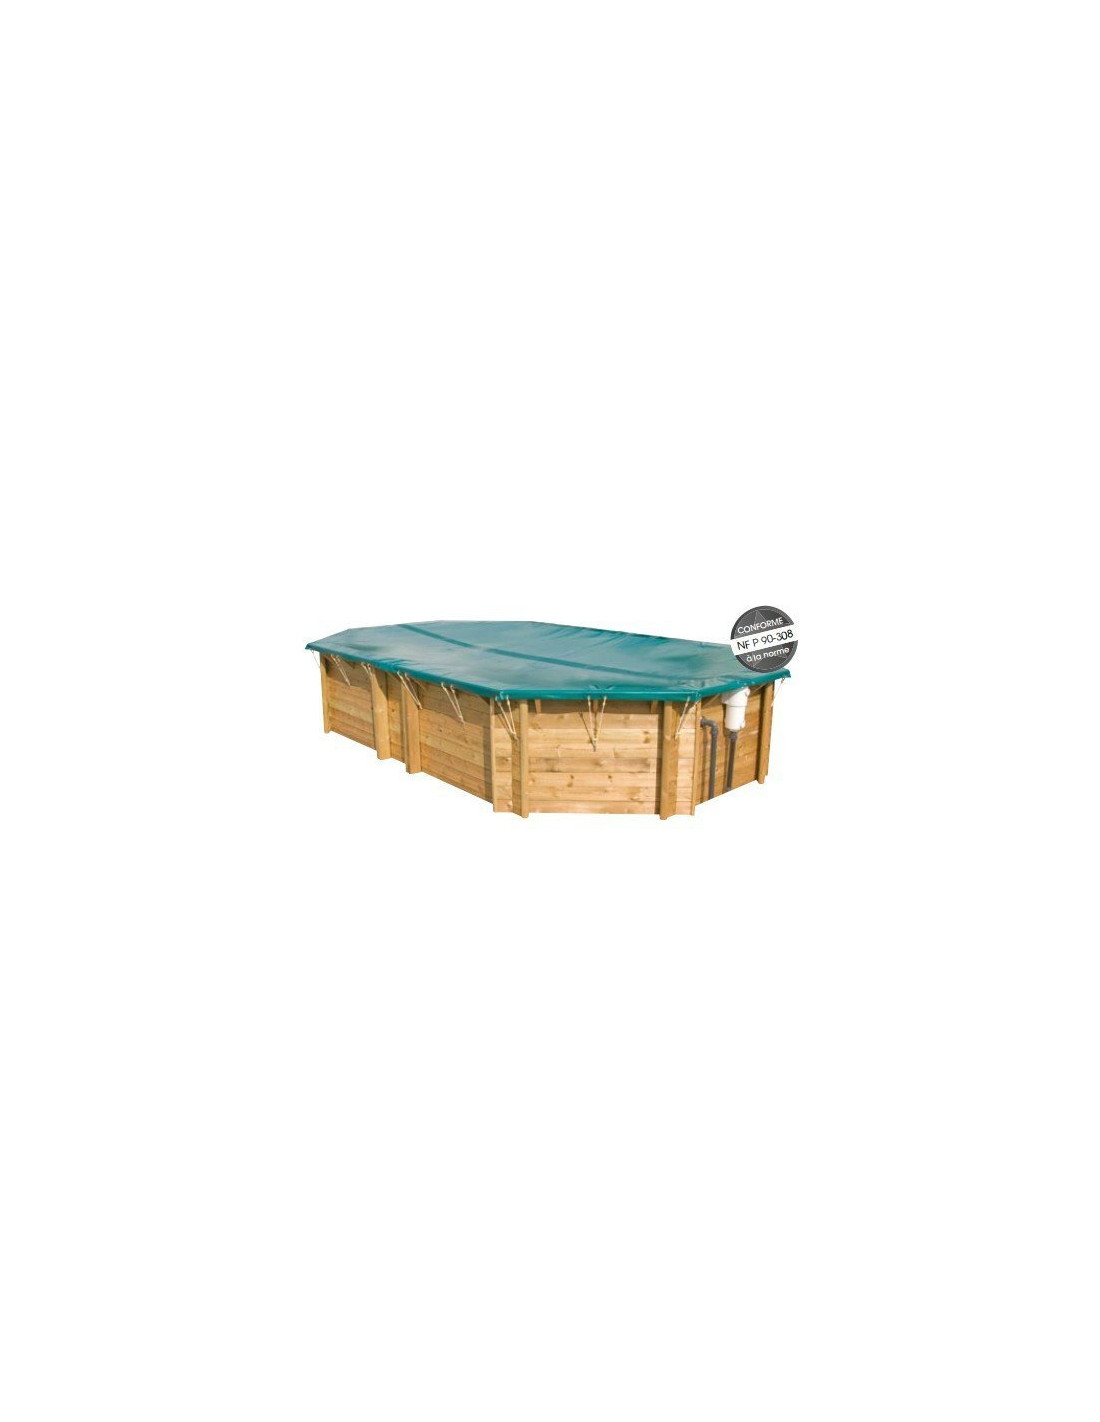 B che hivernage piscine hors sol procopi cerland home for Bache pour piscine hors sol